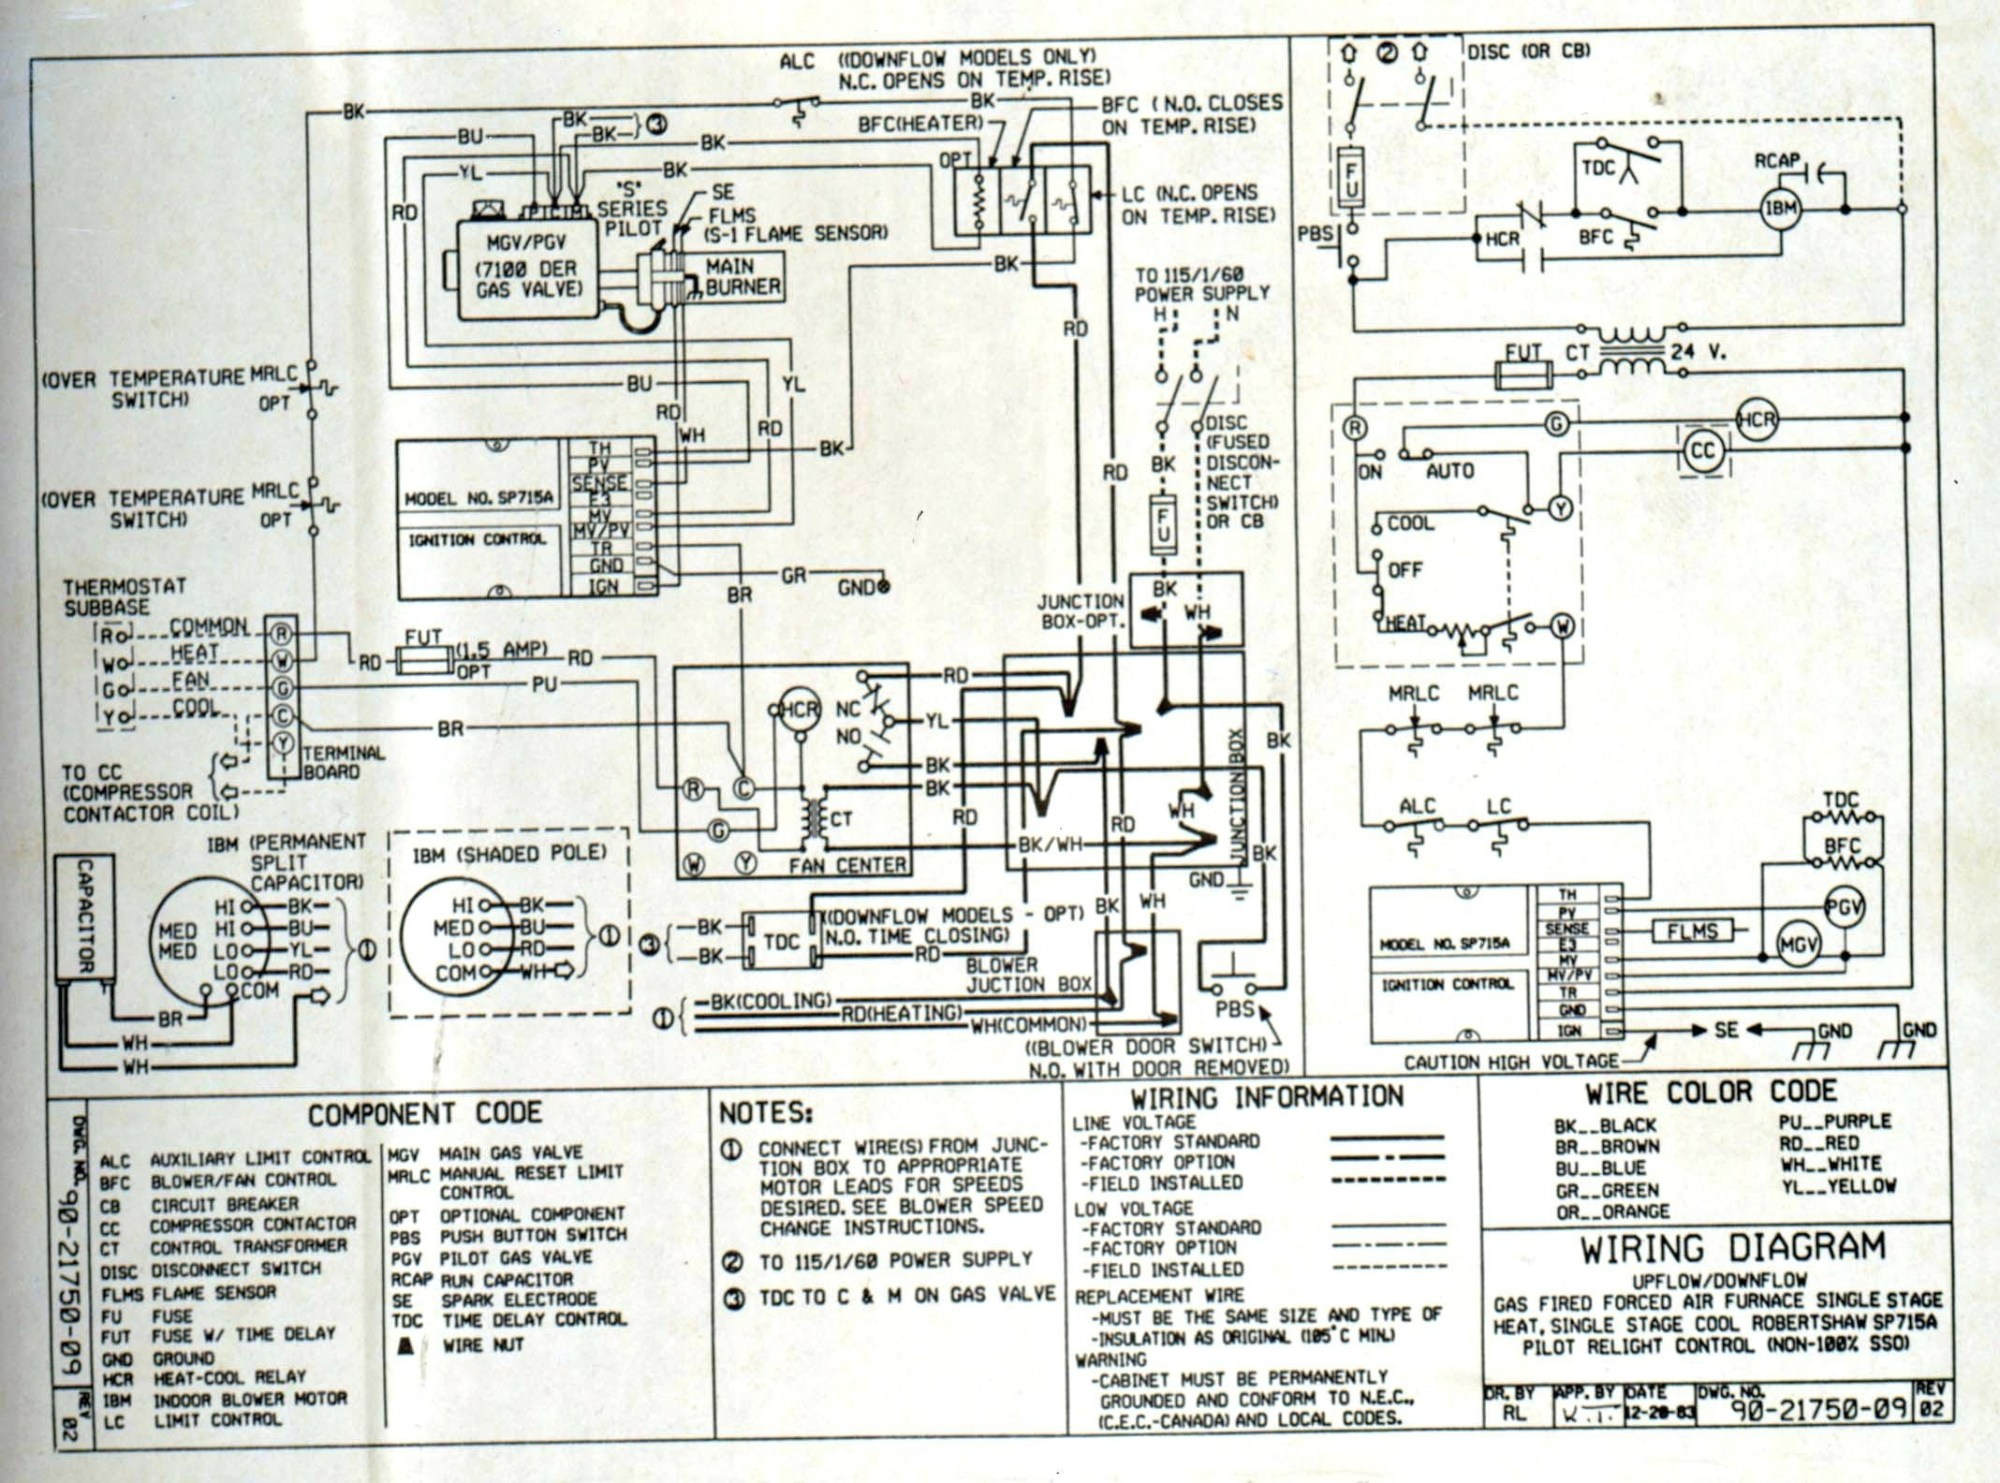 hight resolution of wiring diagram for mobile home furnace wiring diagrams for gas furnace valid refrence wiring diagram